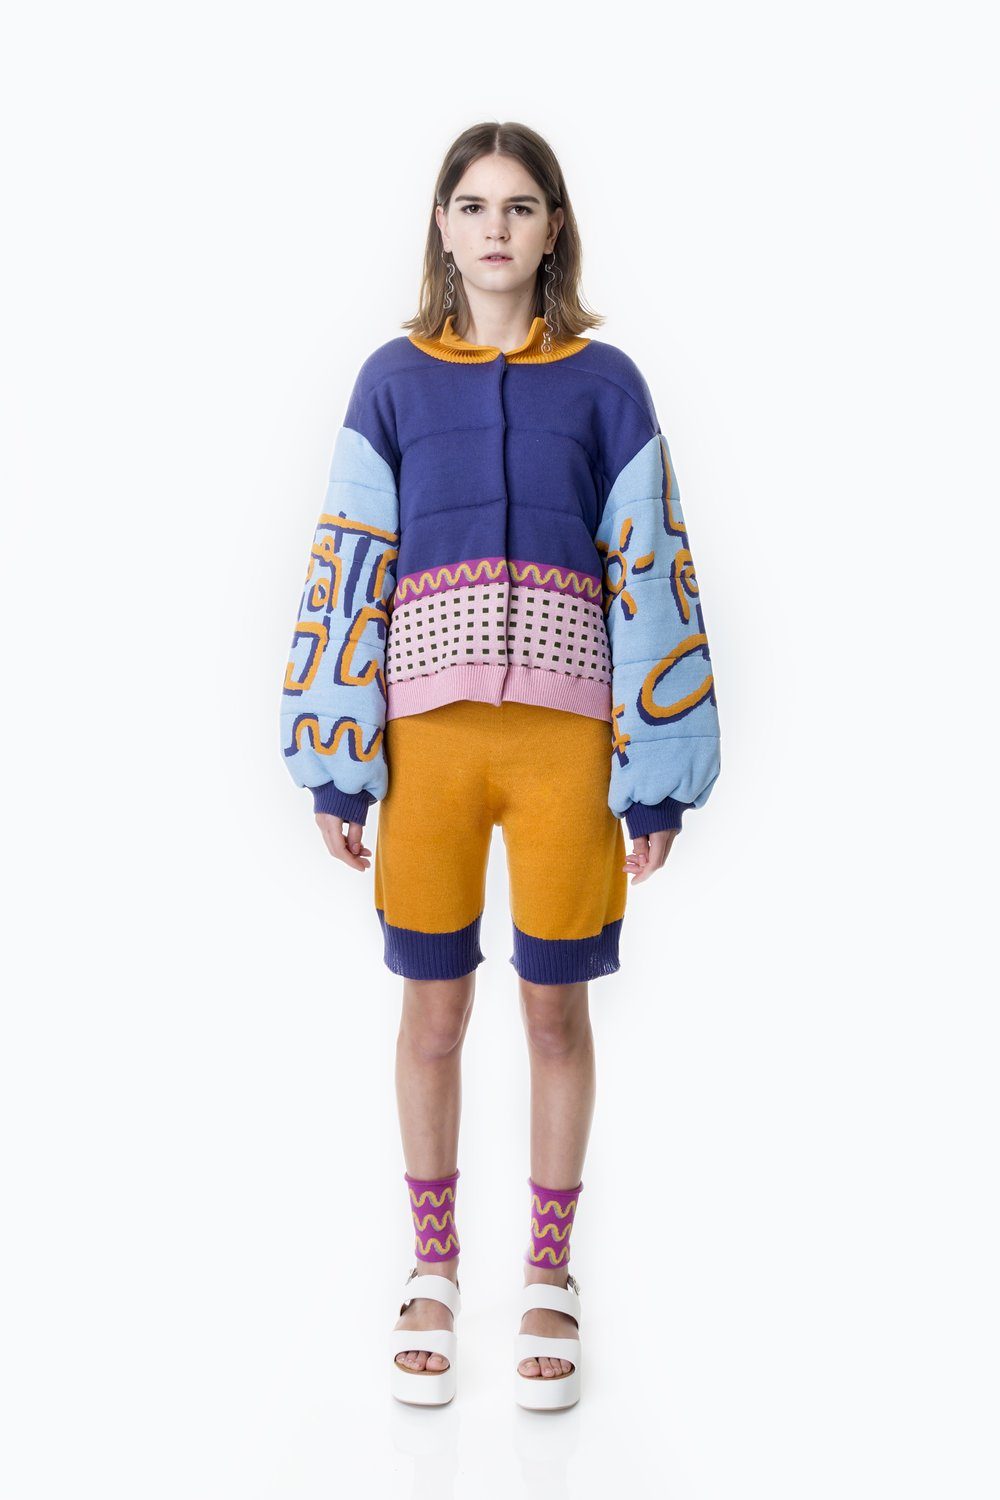 puffer and shorts.jpg